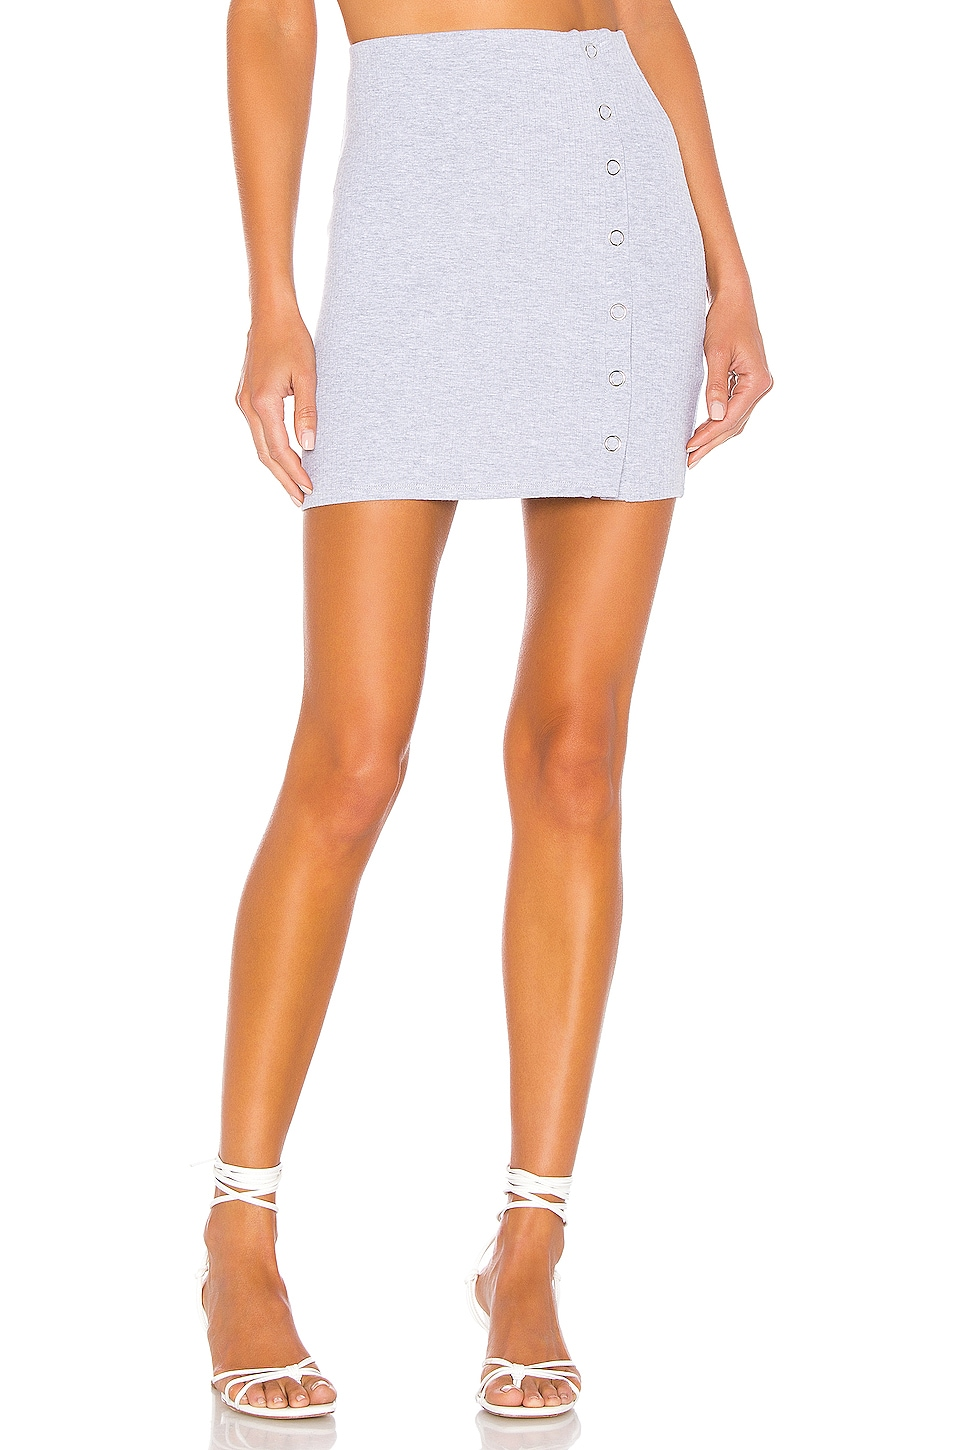 Privacy Please Genevieve Mini Skirt in Heather Grey